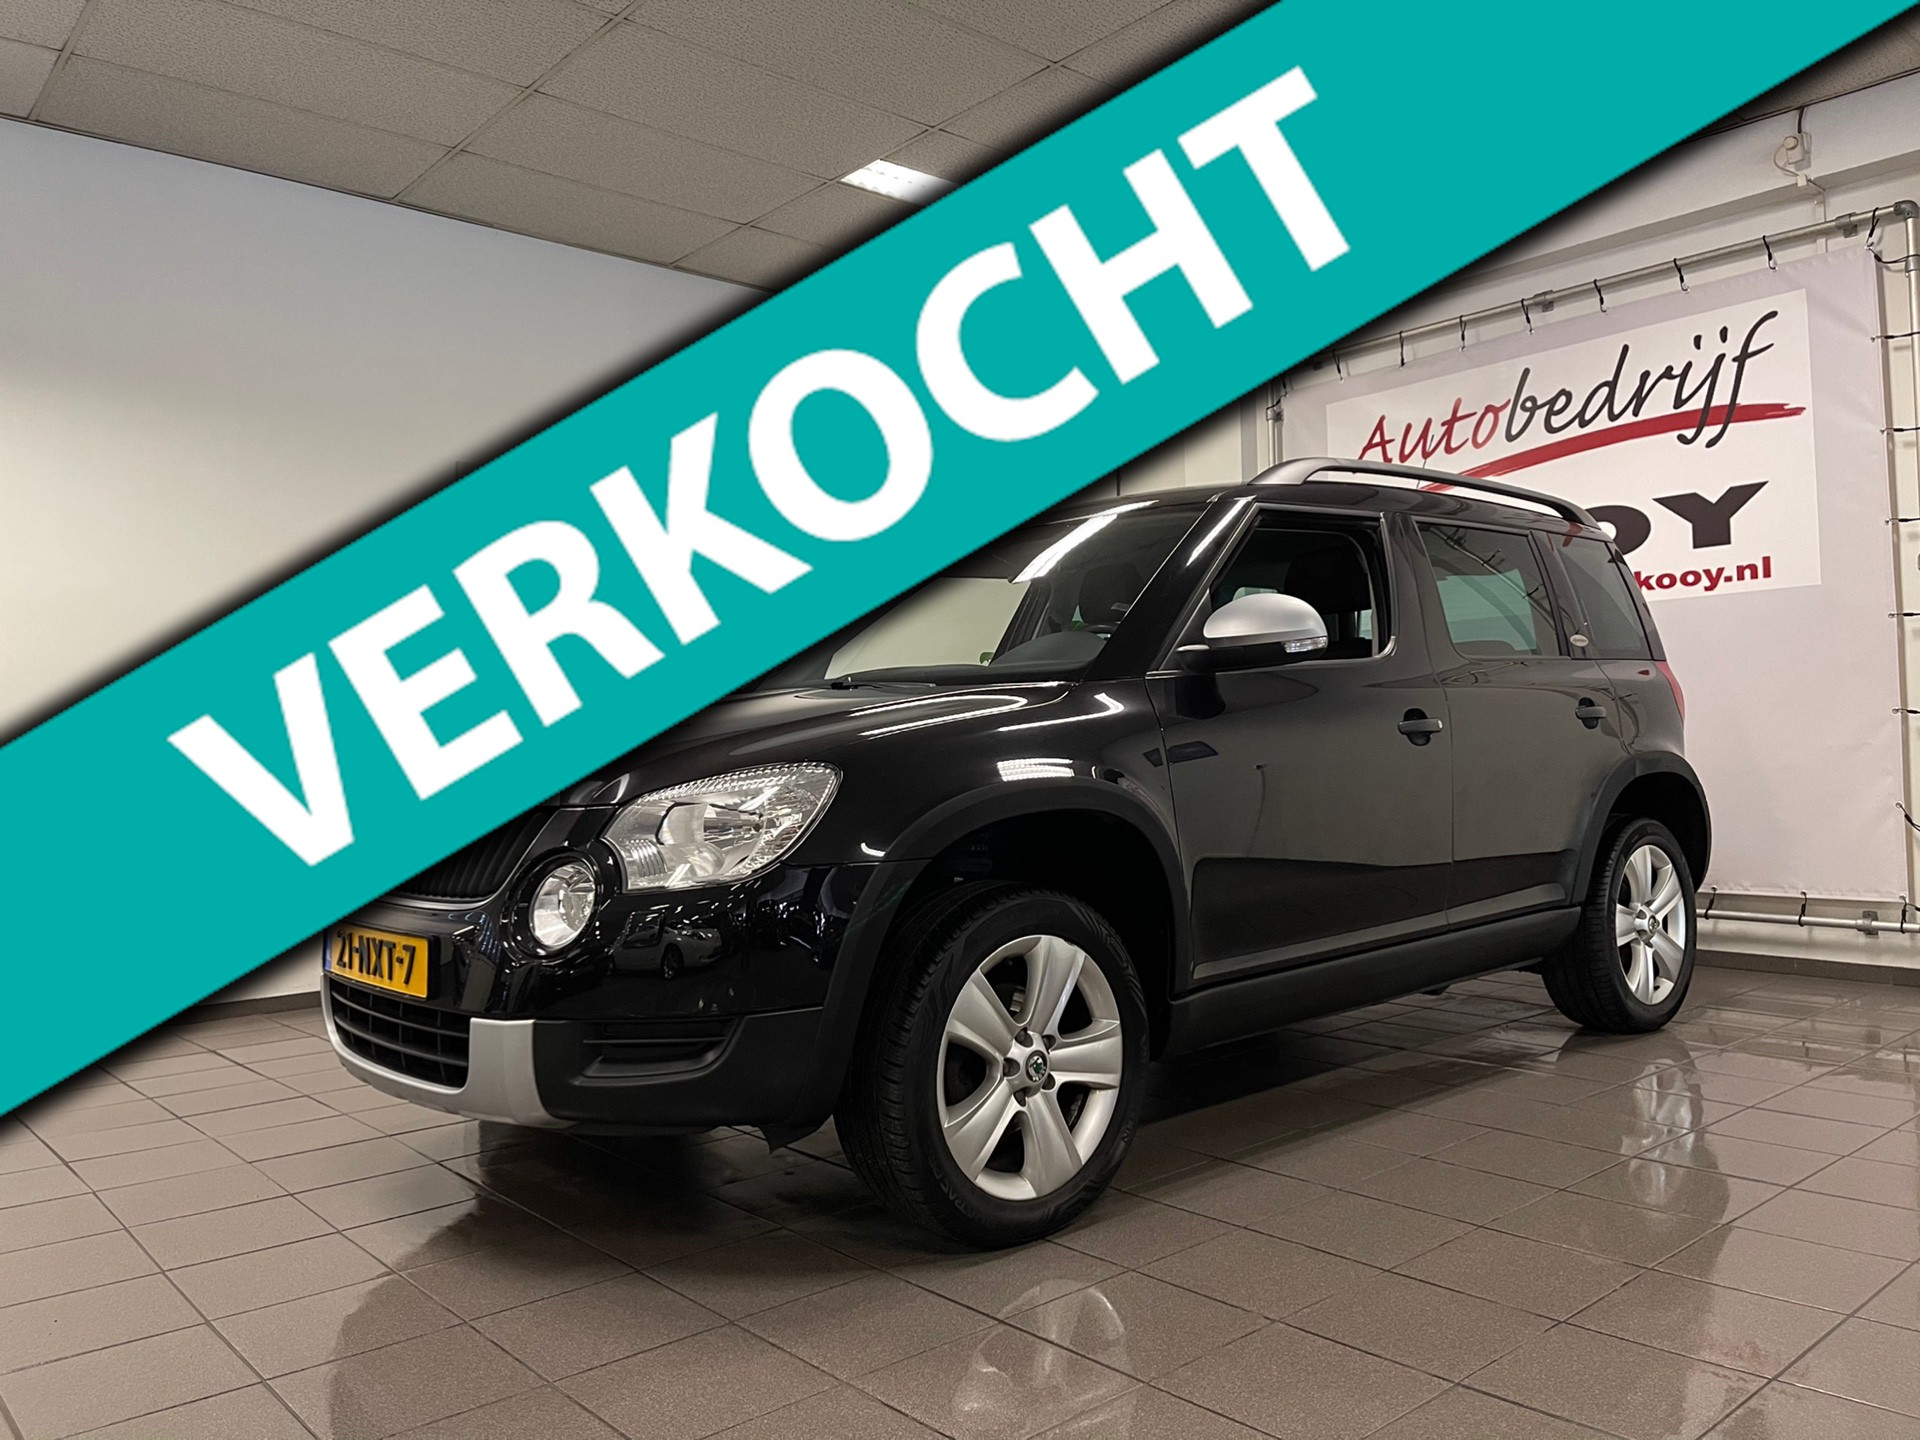 Skoda Yeti 1.2 TSI Expedition * Airco / Cruise control / LM Velgen / Trekhaak *